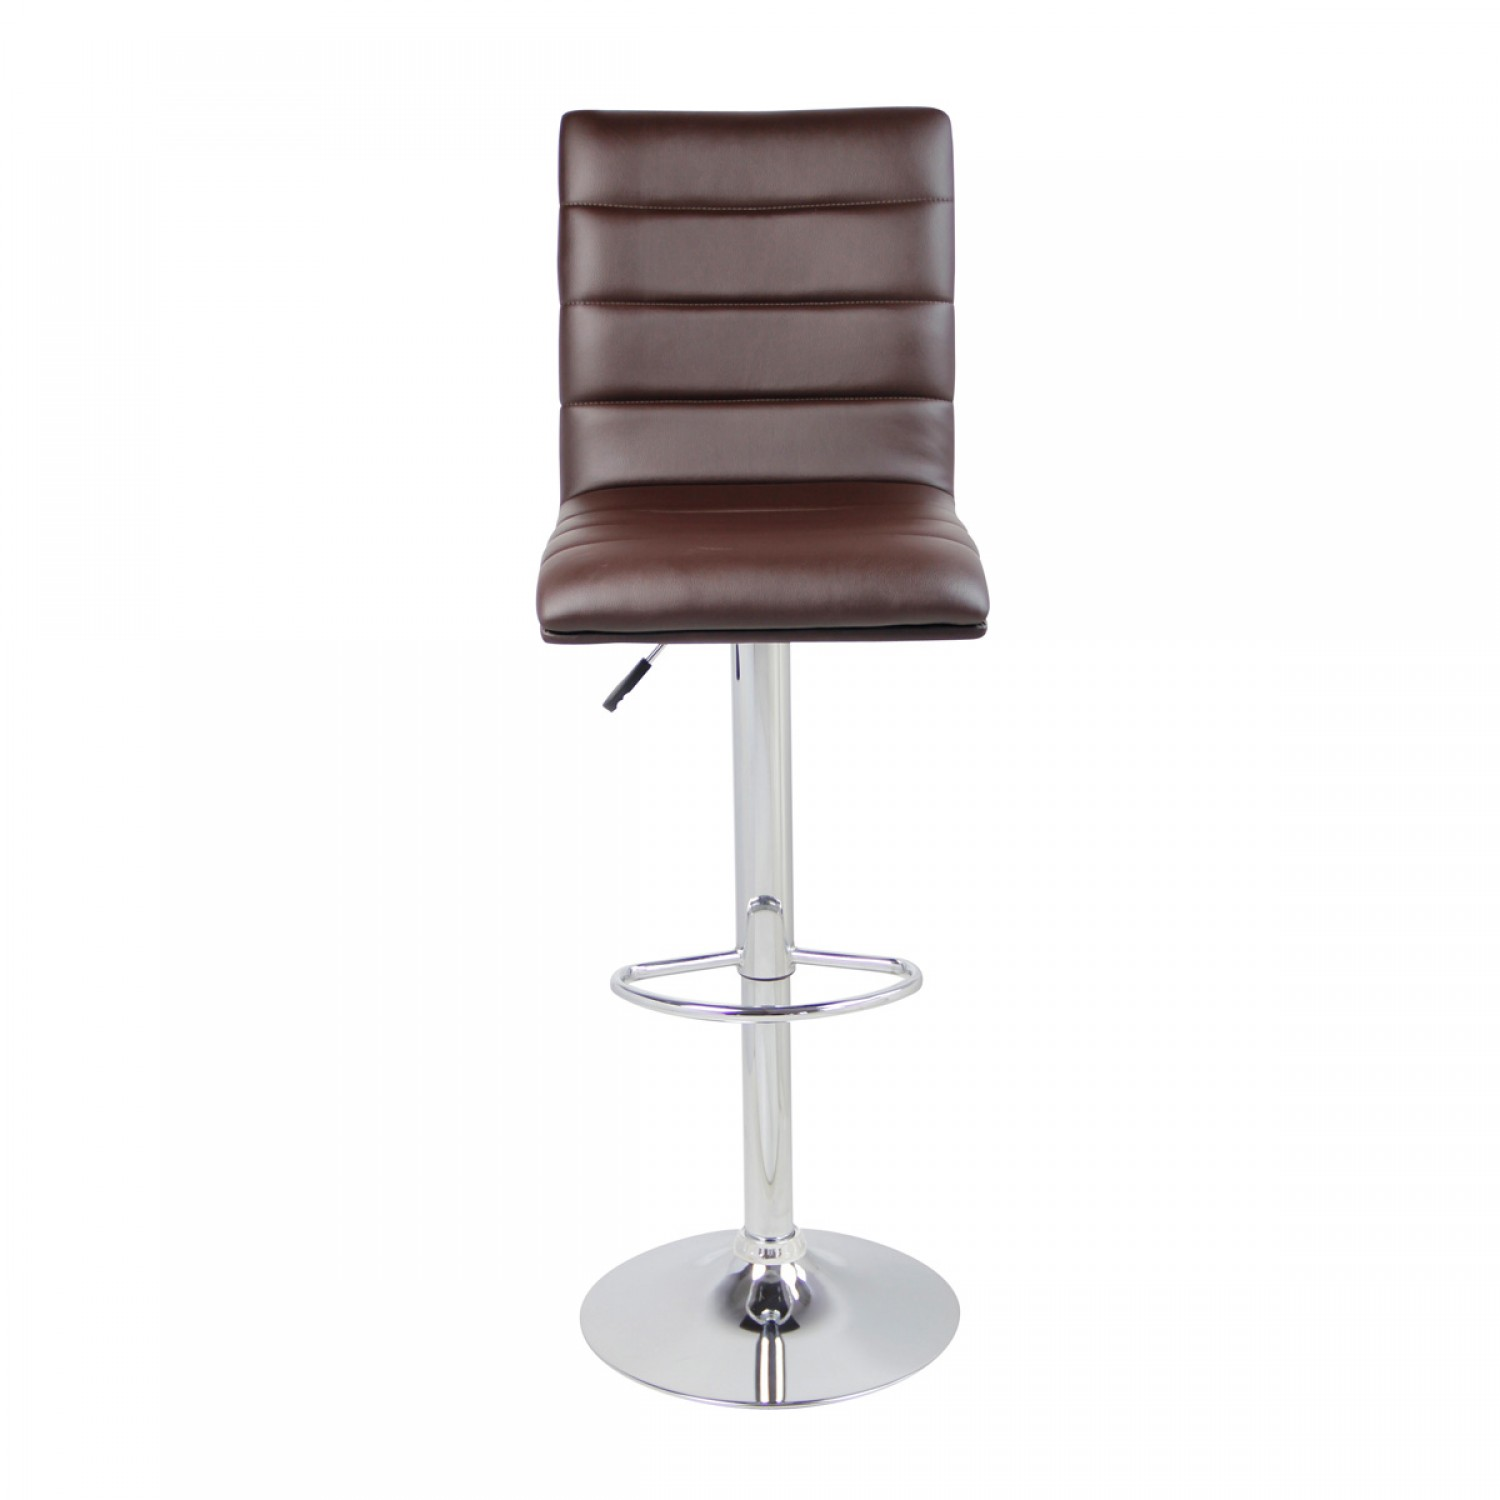 Tabouret de bar Jazzy marron (lot de 2)